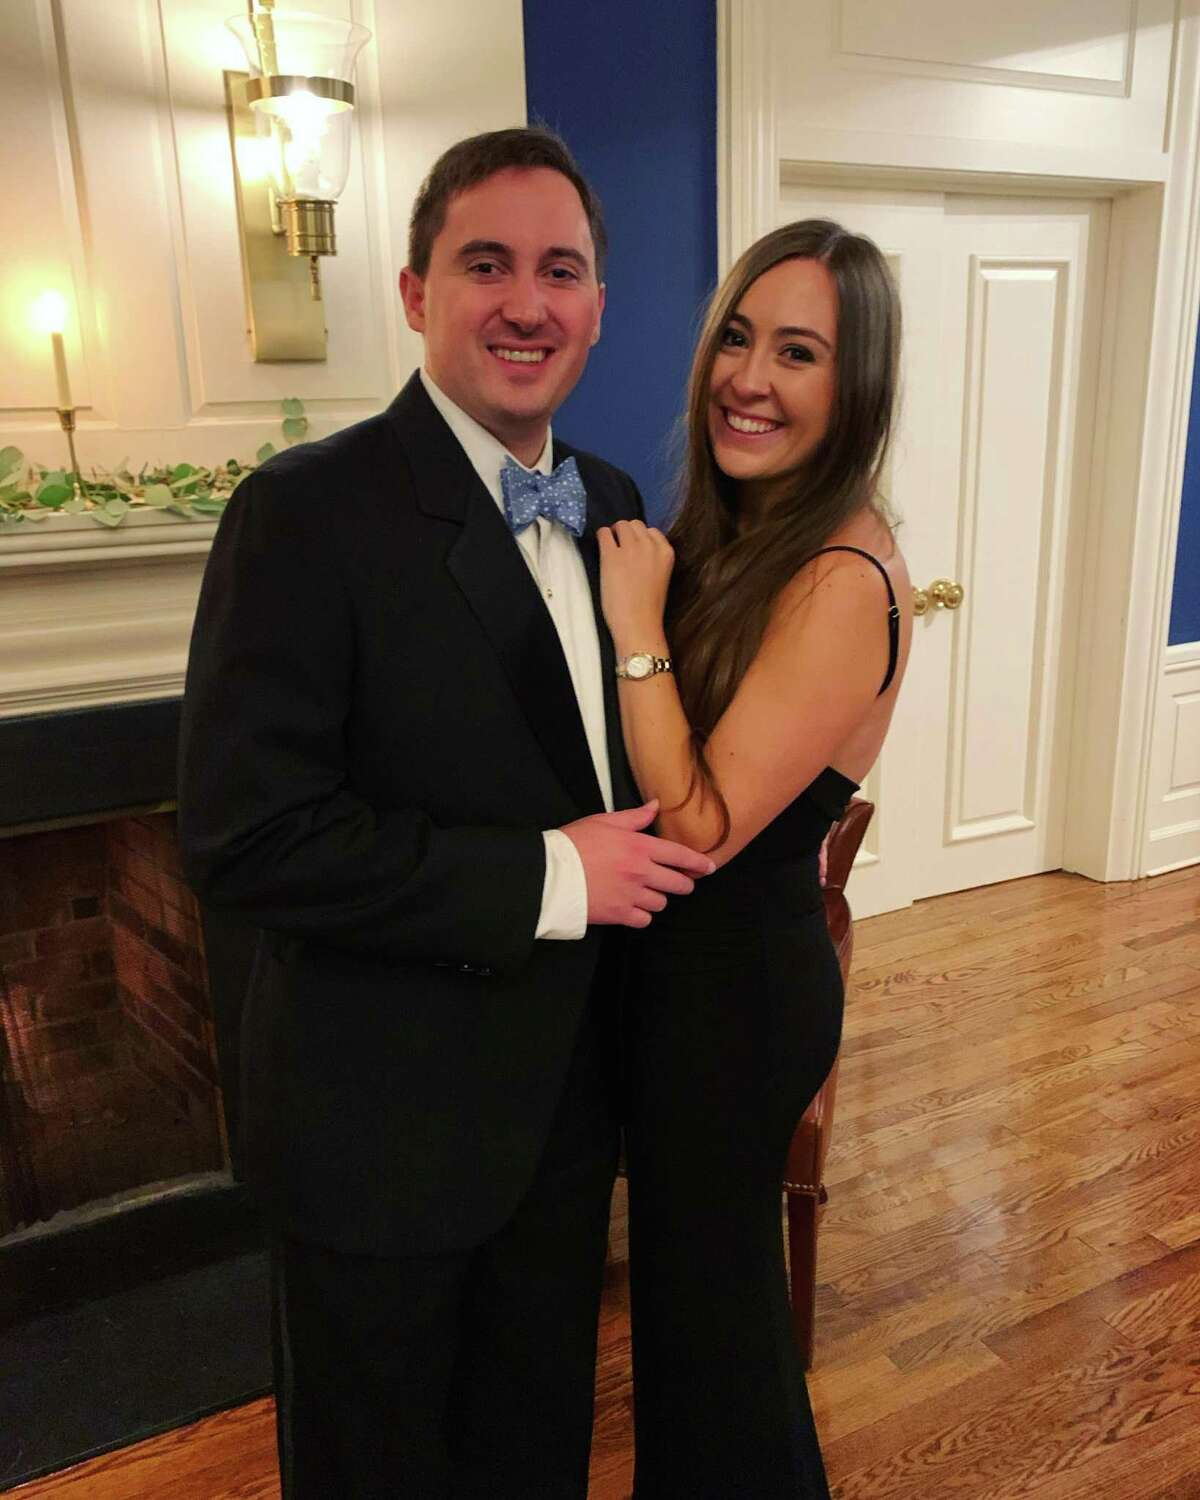 Gregory Wagner and Kelly Cirillo are engaged to be married Oct. 2, 2021, at St. Aloysius Roman Catholic Church in New Canaan.